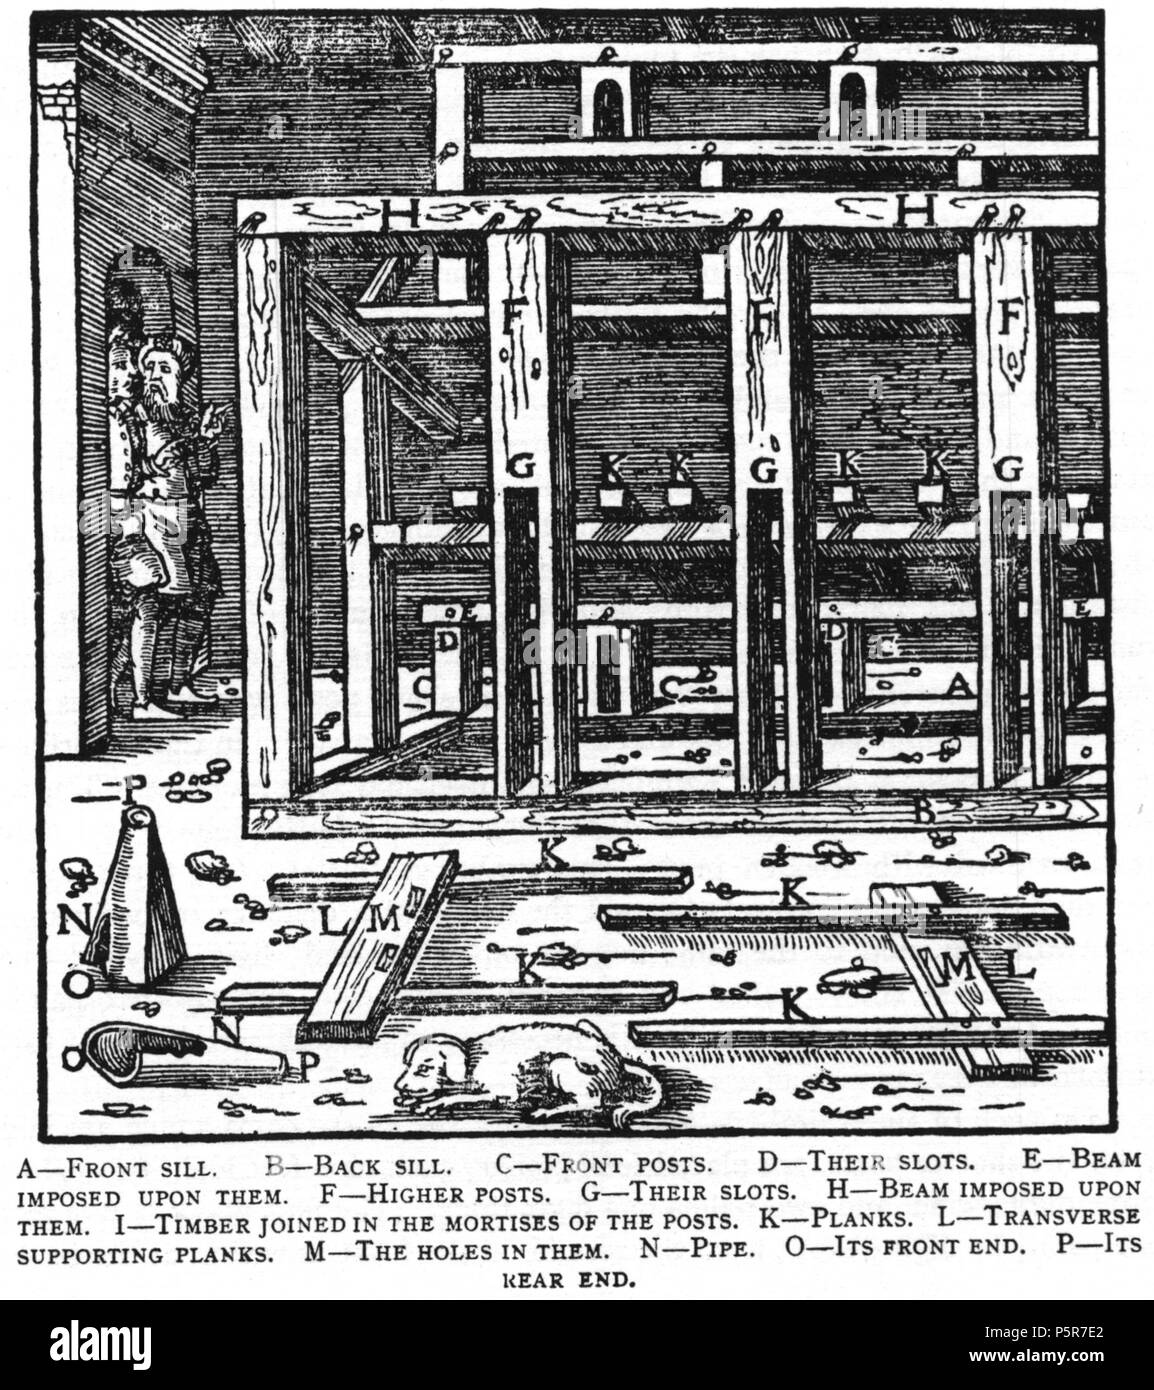 N/A. Woodcut illustration from De re metallica by Georgius Agricola. This is a 300dpi scan from the 1950 Dover edition of the 1913 Hoover translation of the 1556 reference. The Dover edition has slightly smaller size prints than the Hoover (which is a rare book). The woodcuts were recreated for the 1913 printing. Filenames (except for the title page) indicate the chapter (2, 3, 5, etc.) followed by the sequential number of the illustration. 2 May 2005, 07:11:38. TCO (talk) 223 Book9-6 - Stock Image